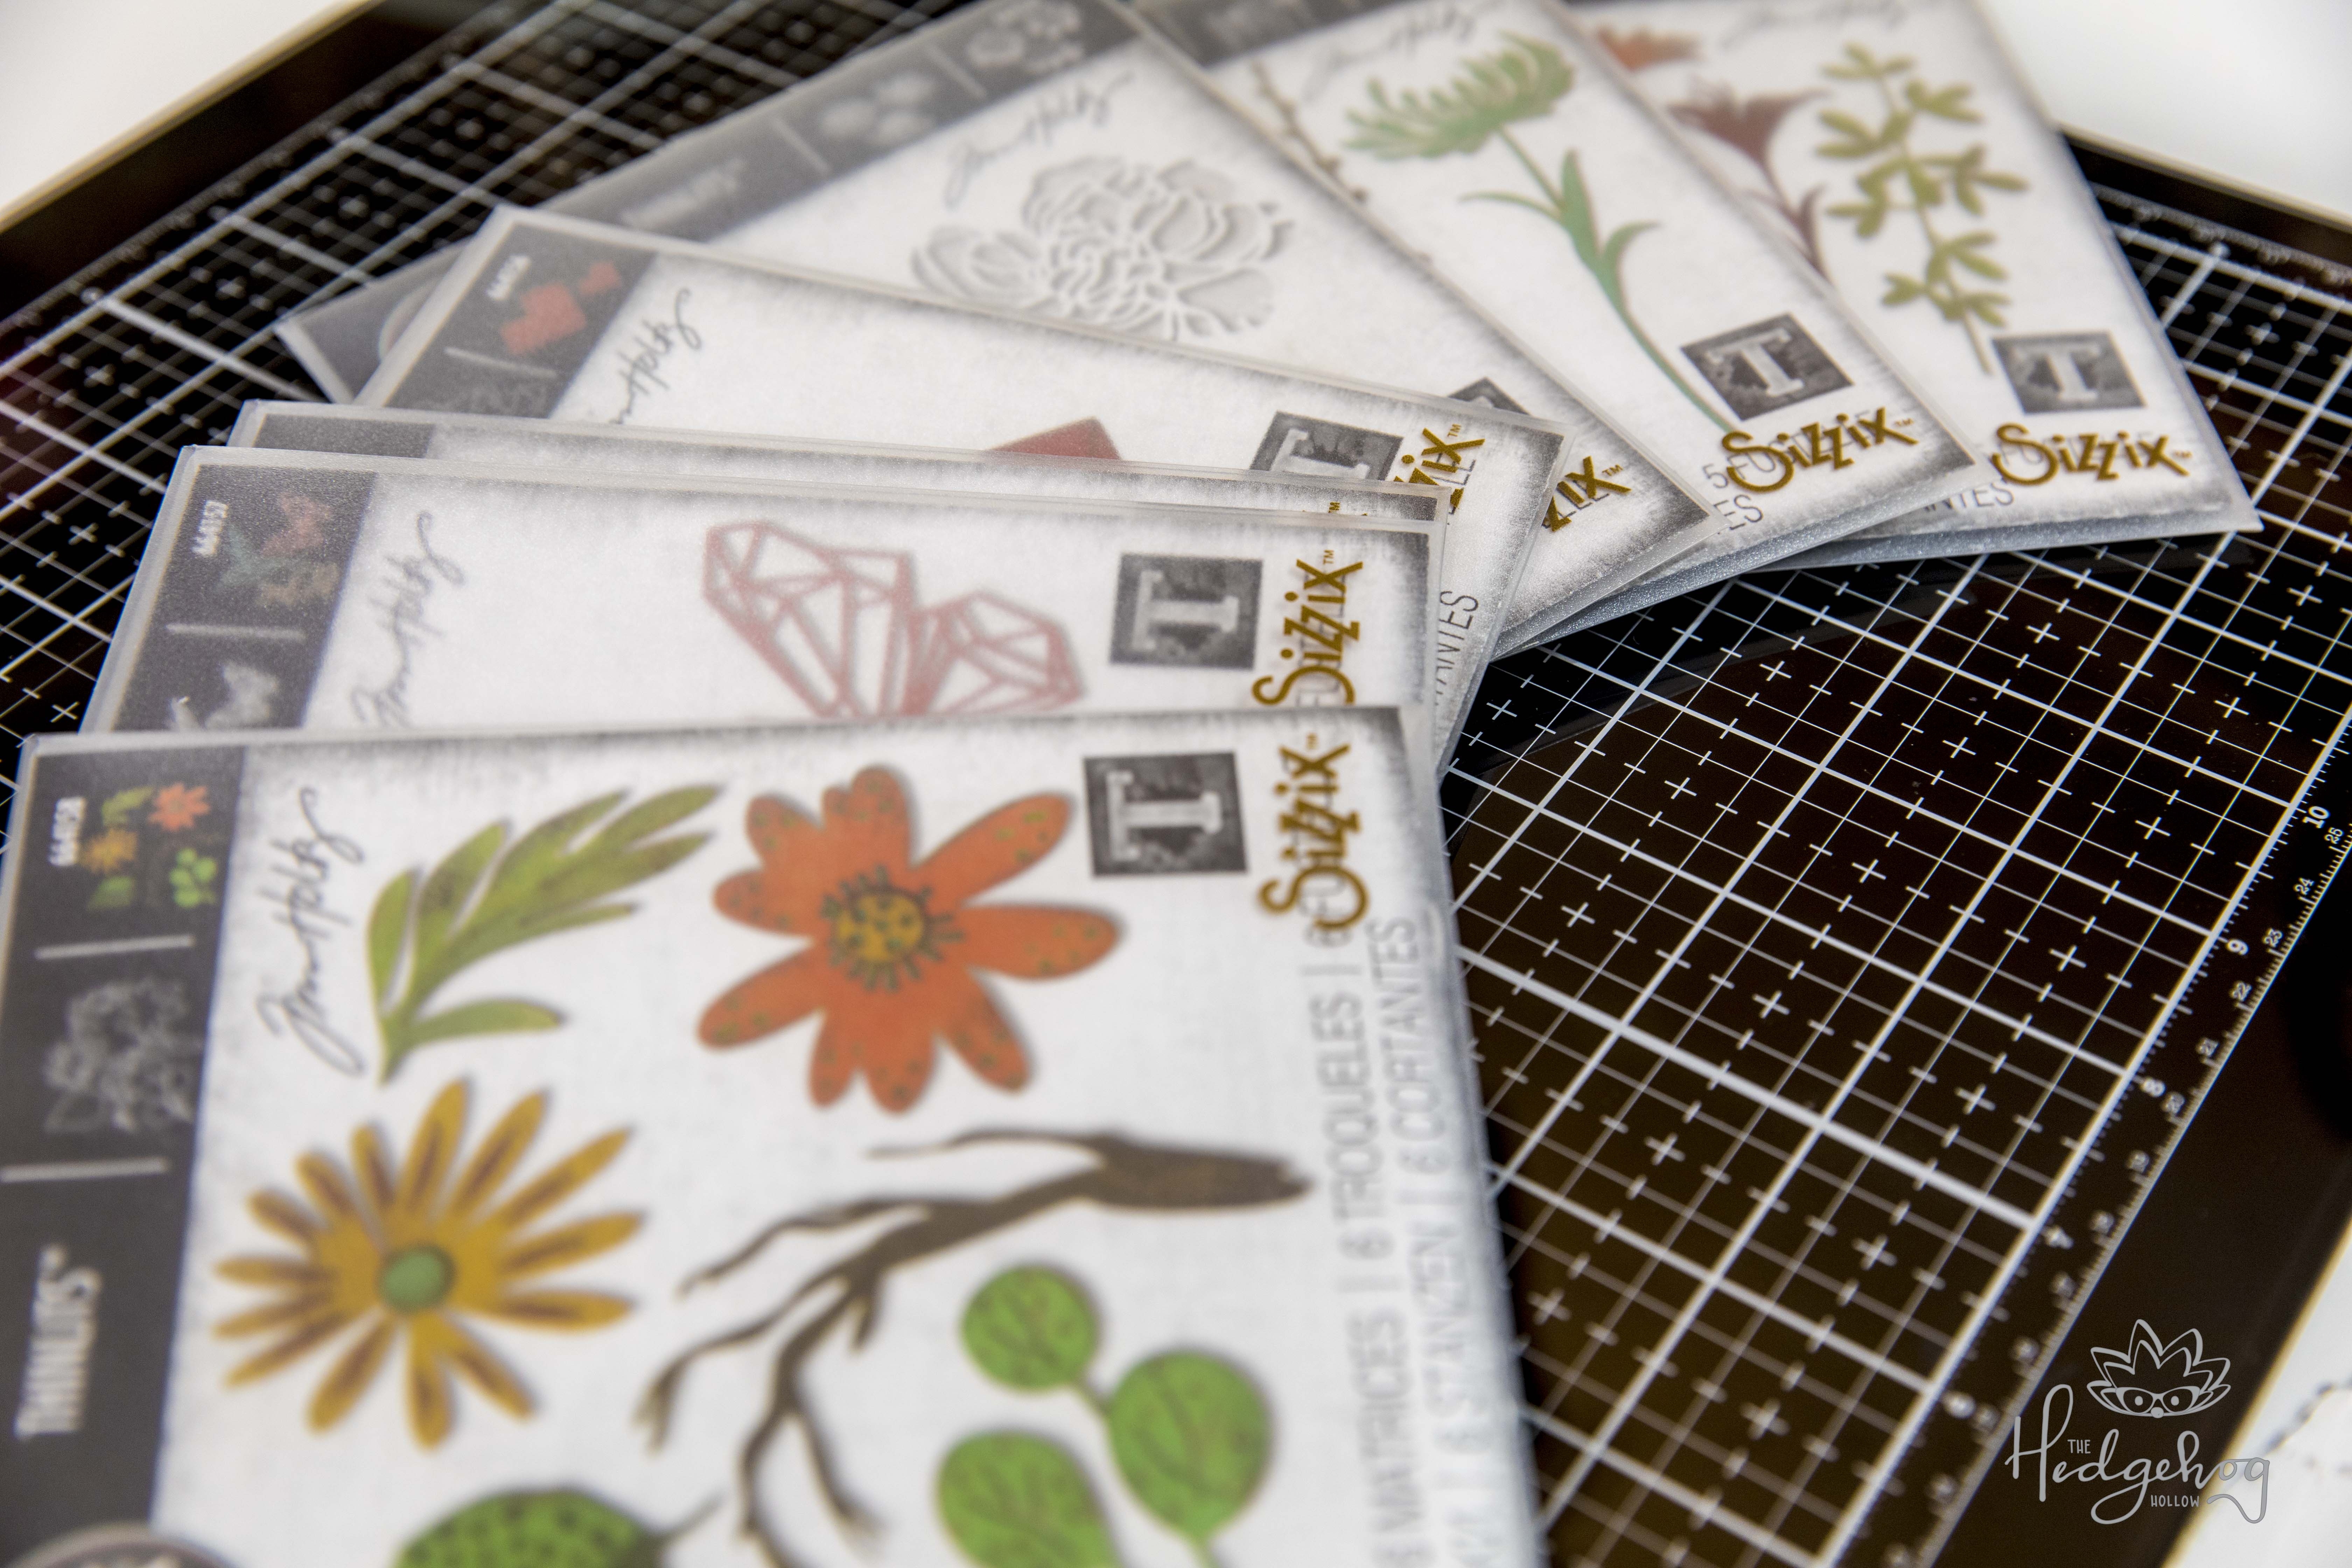 Introducing the New Sizzix Alterations Release by Tim Holtz